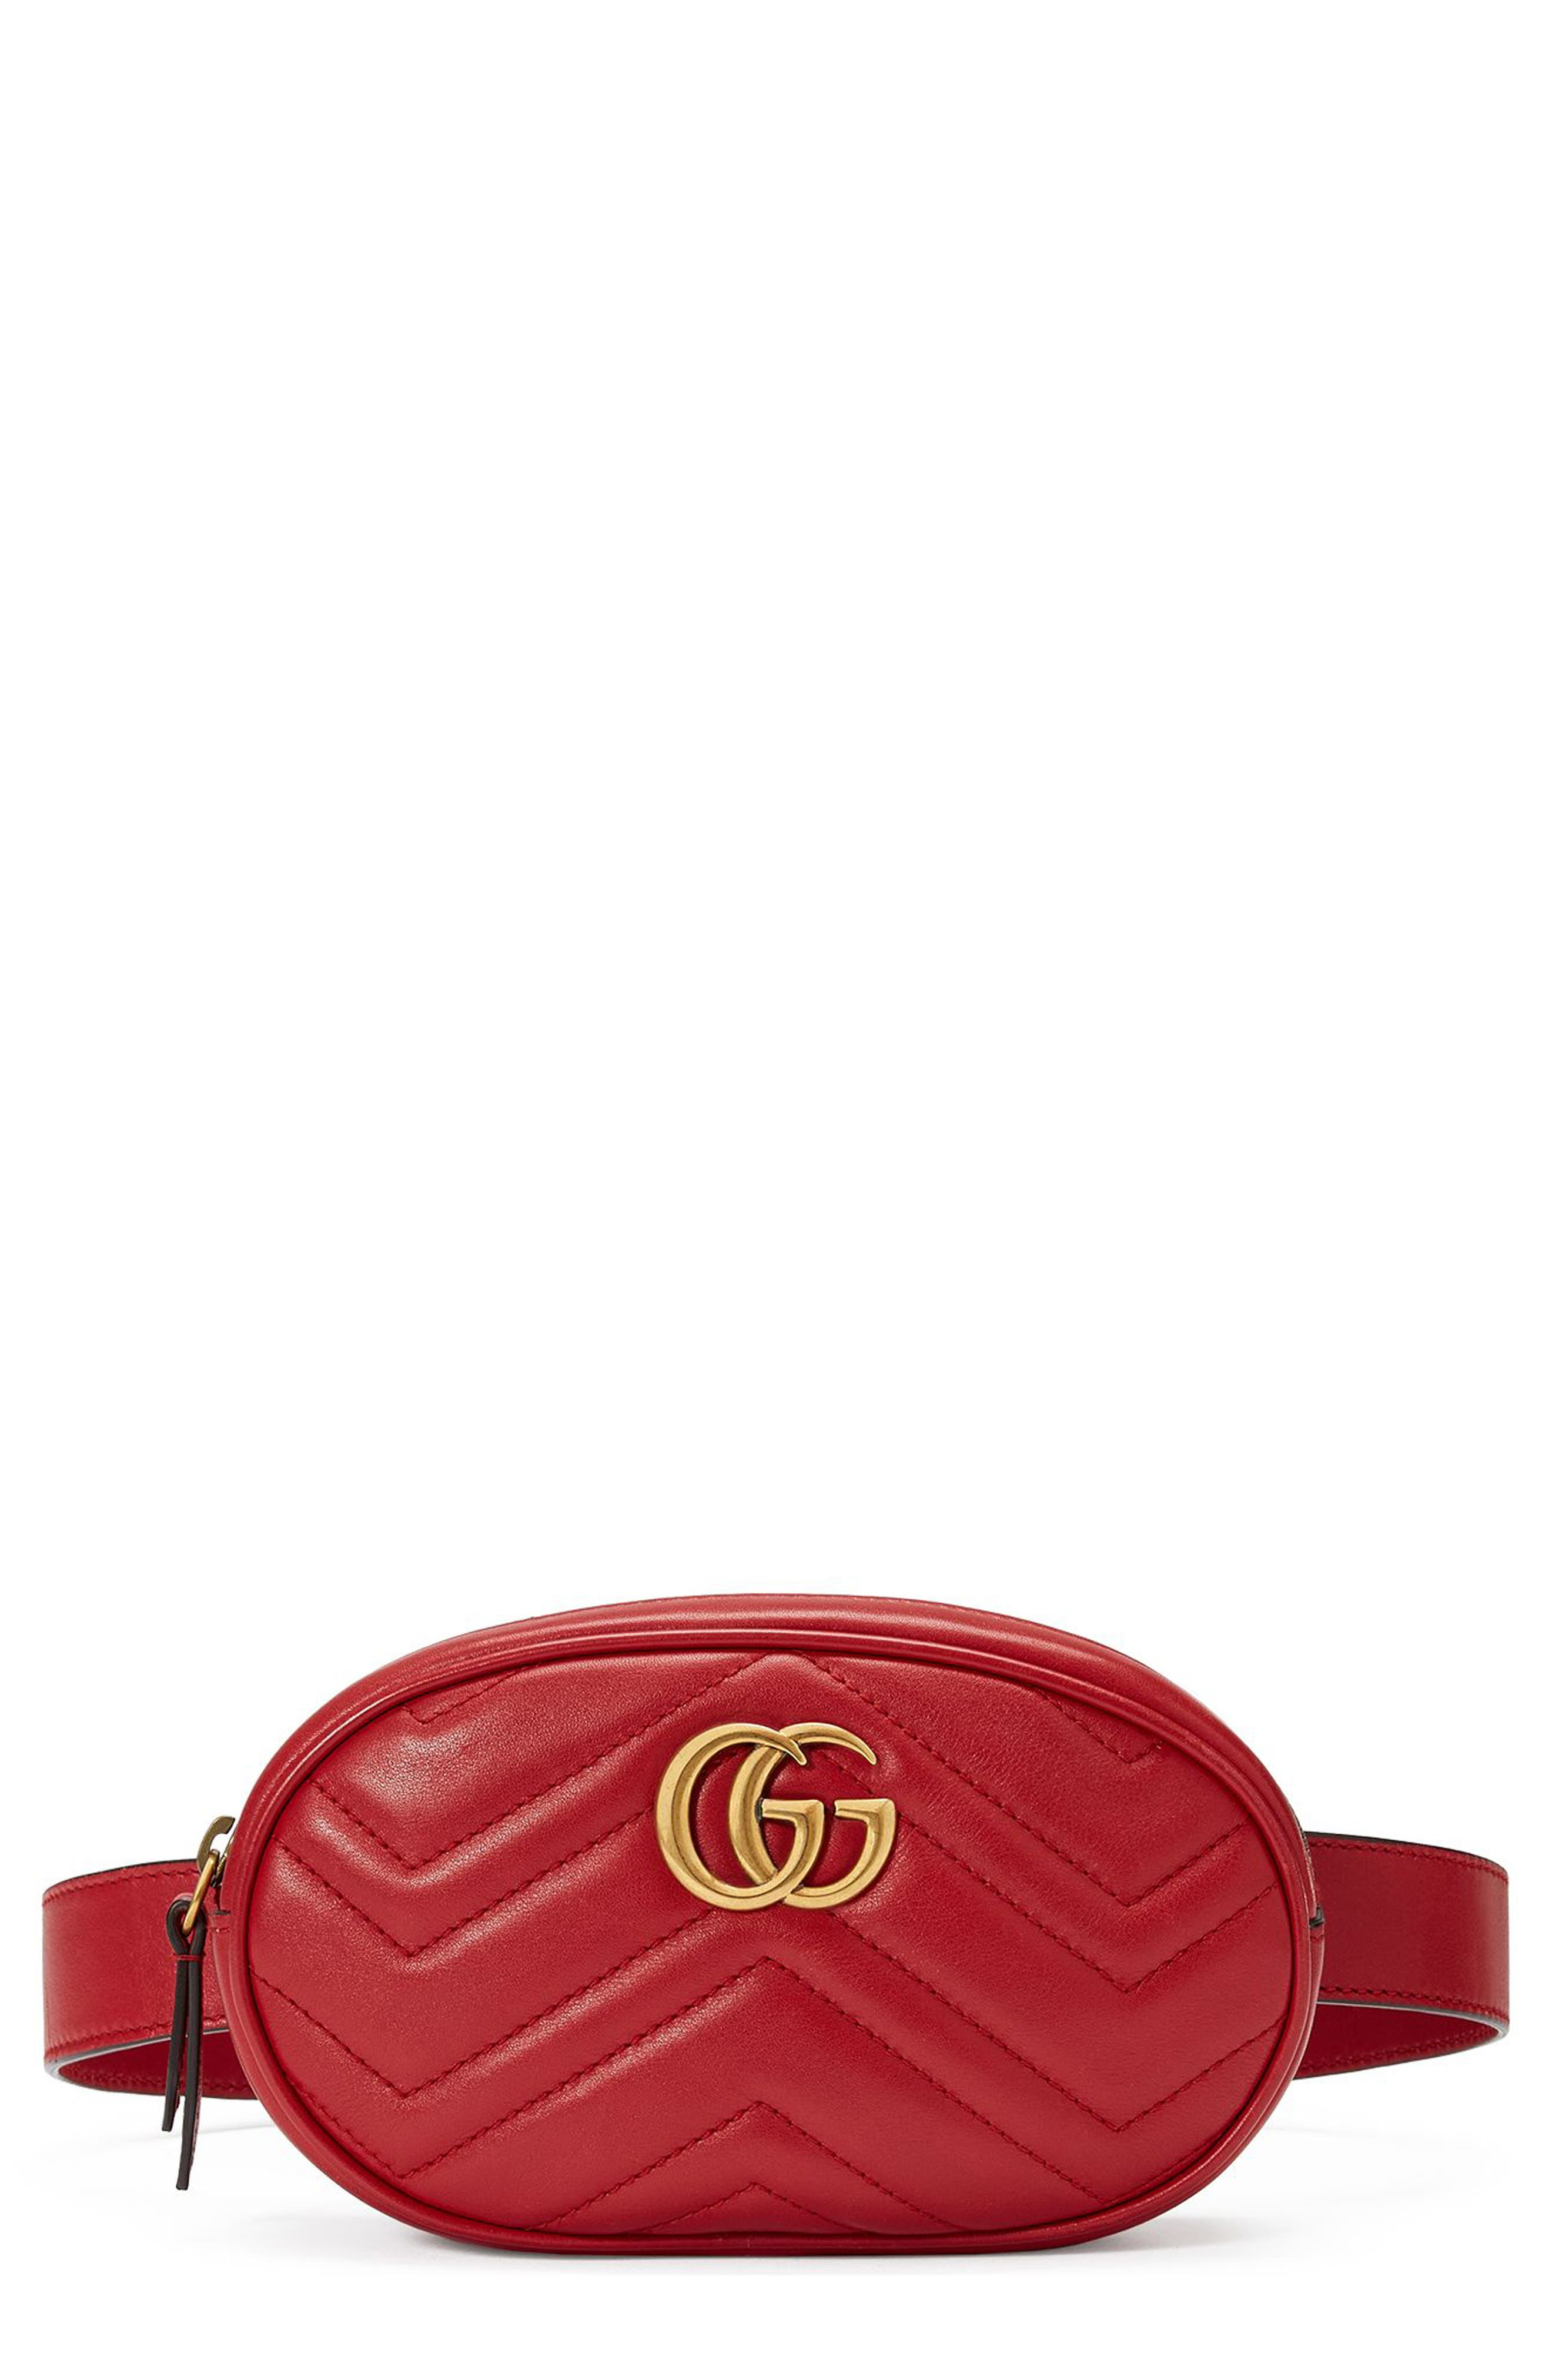 GG Marmont 2.0 Matelassé Leather Belt Bag,                             Main thumbnail 1, color,                             Hibiscus Red